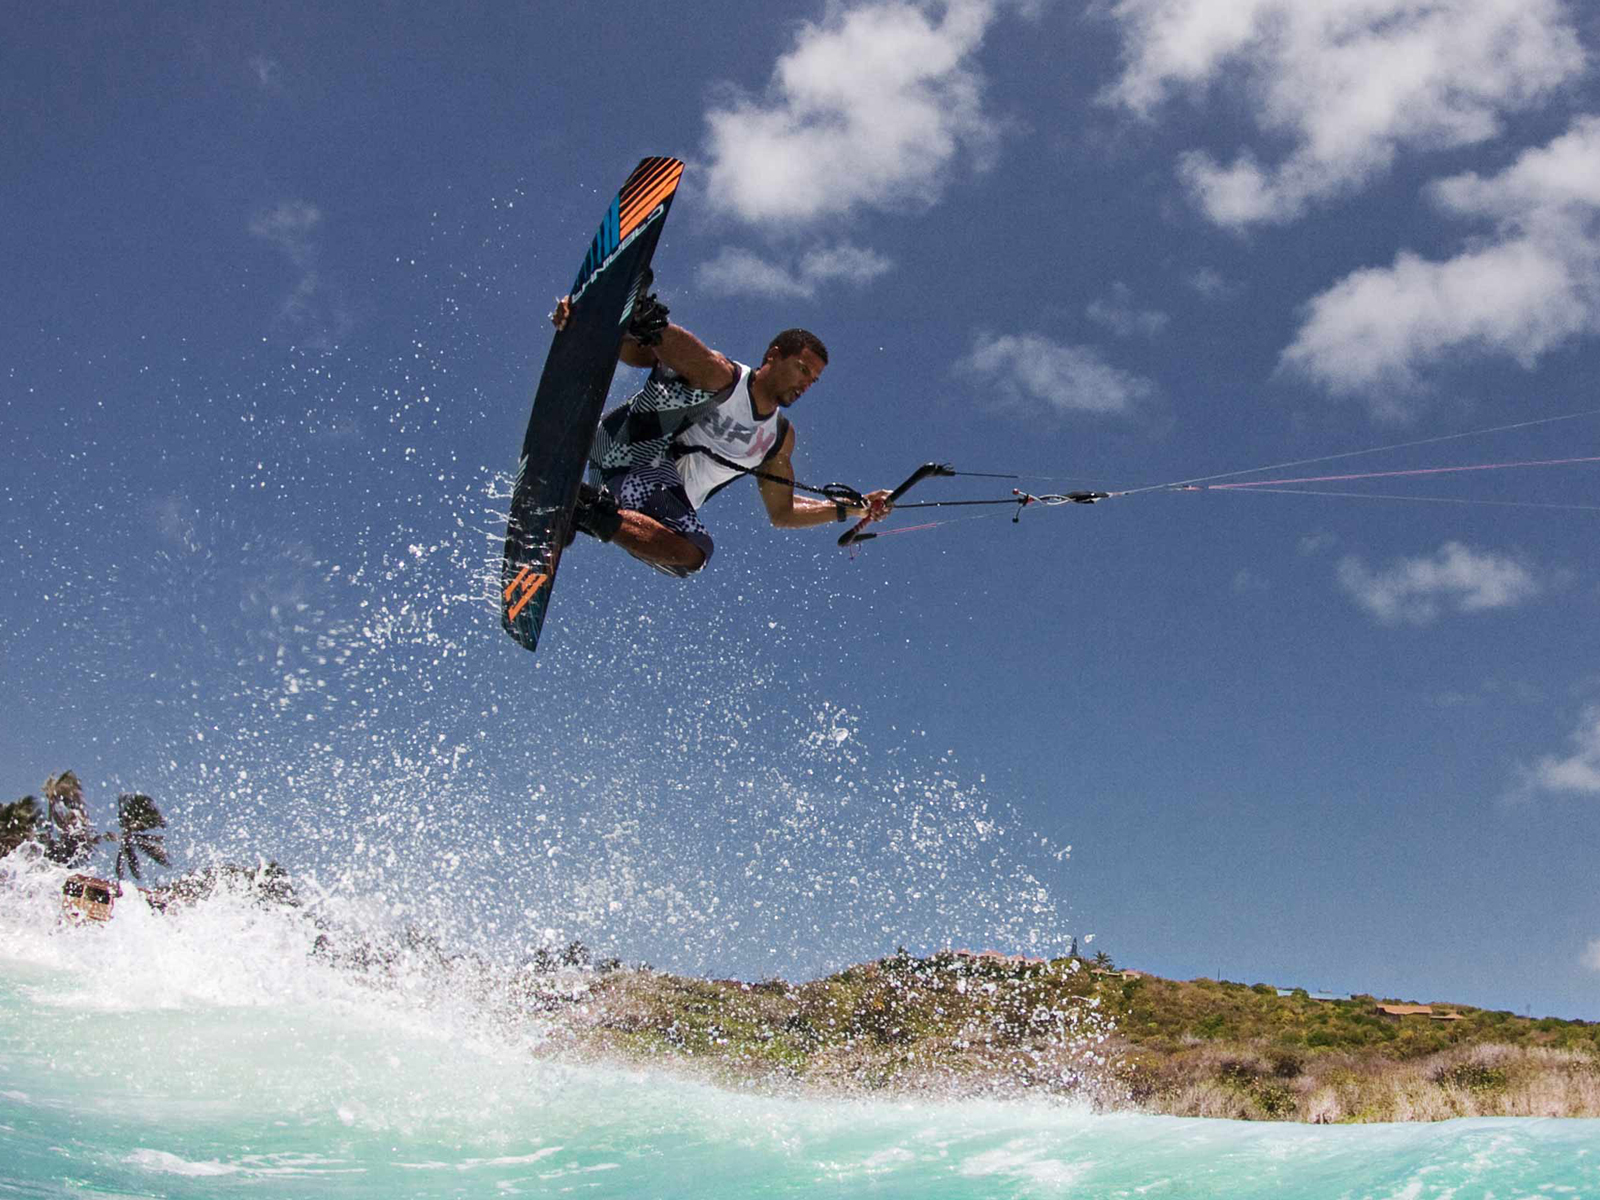 kitesurf wallpaper image - Andre Phillip with a nice grab over the surf - in resolution: Standard 4:3 1600 X 1200